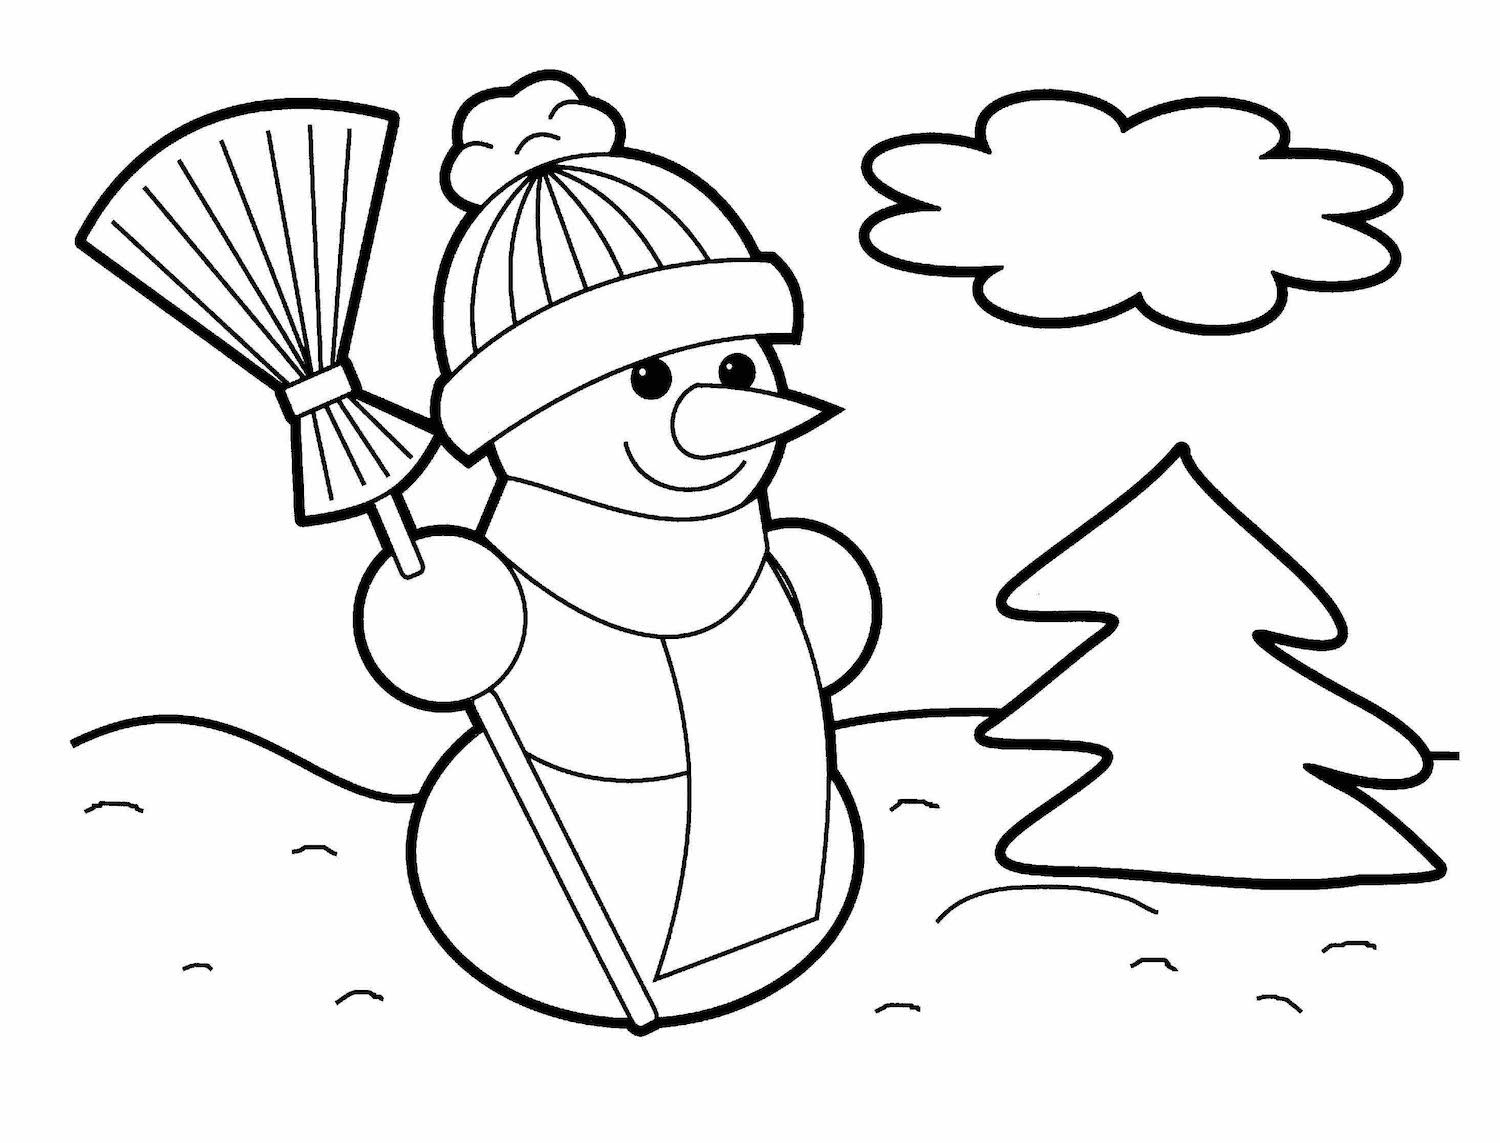 Christmas Coloring Pages Christmas Coloring Pages Christmas Tree Coloring Page Snowman Coloring Pages